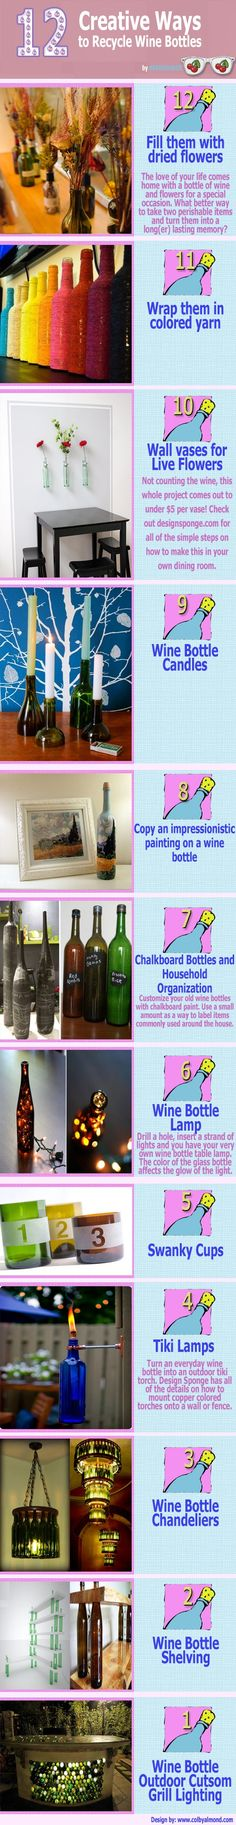 12 Creative Ways to Recycle Wine Bottles:    7) Chalkboard Bottles and Household Organization: Customize your old wine bottles with chalkboard paint. Use a small amount as a way to label items commonly used around the house.